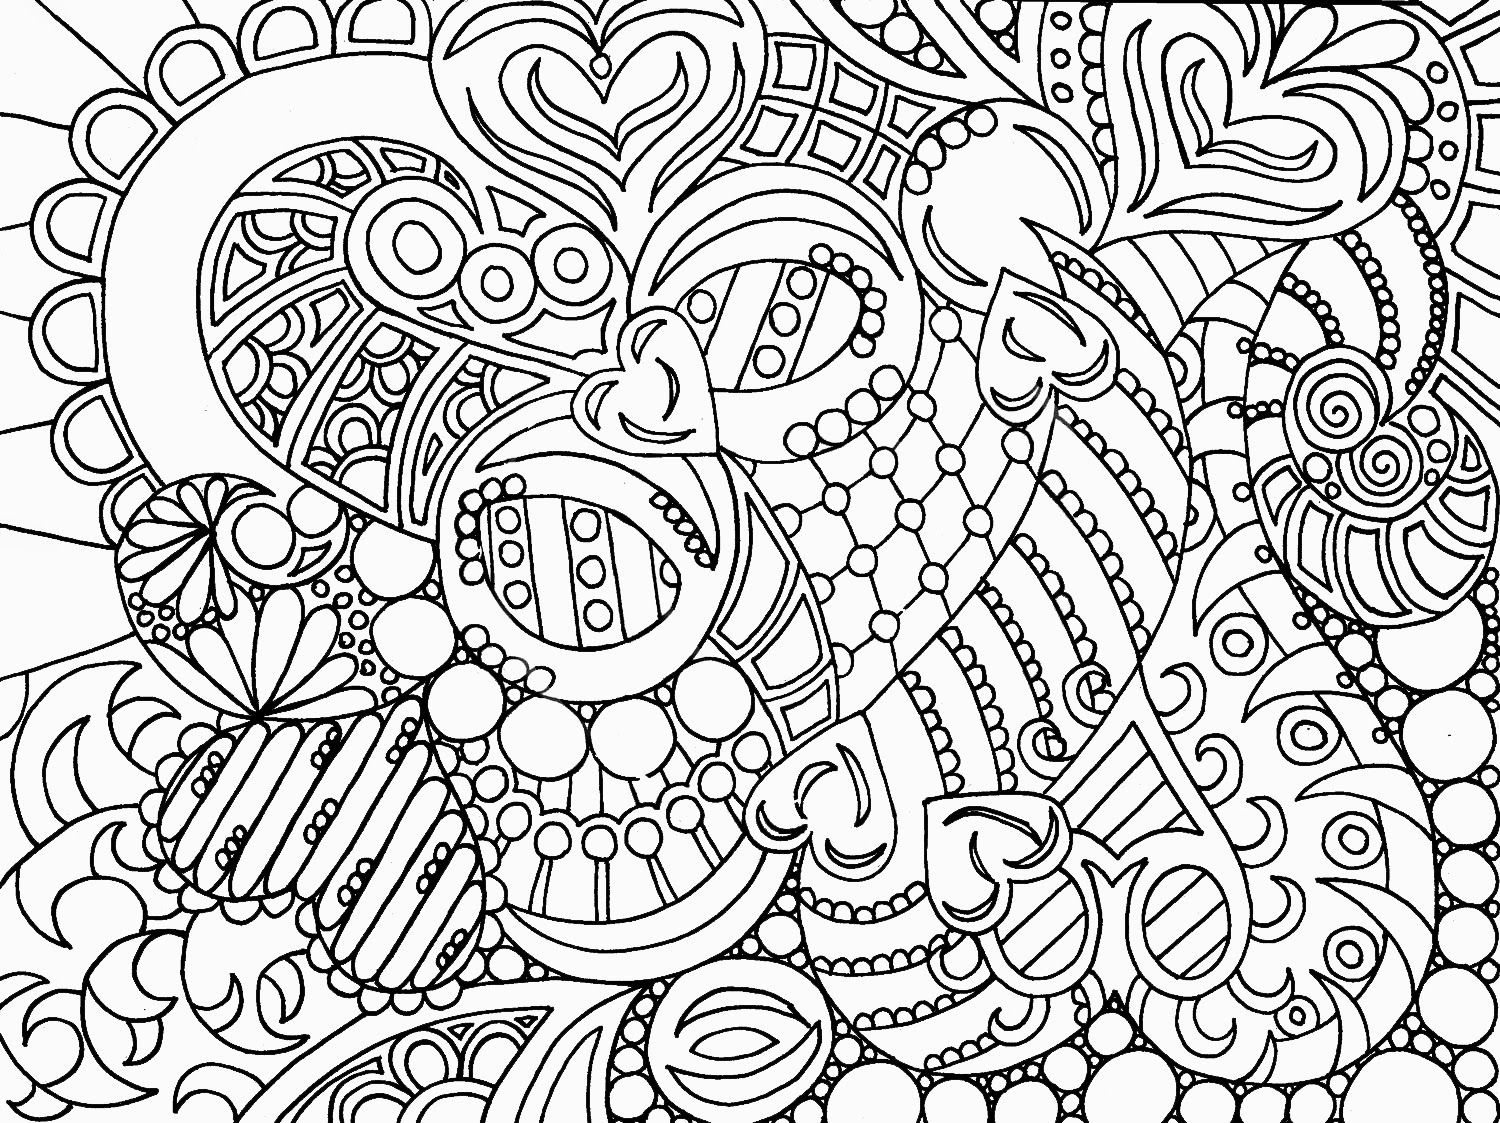 Free Printable 11 X 11 Adult Coloring Pages | coloring sheets ...